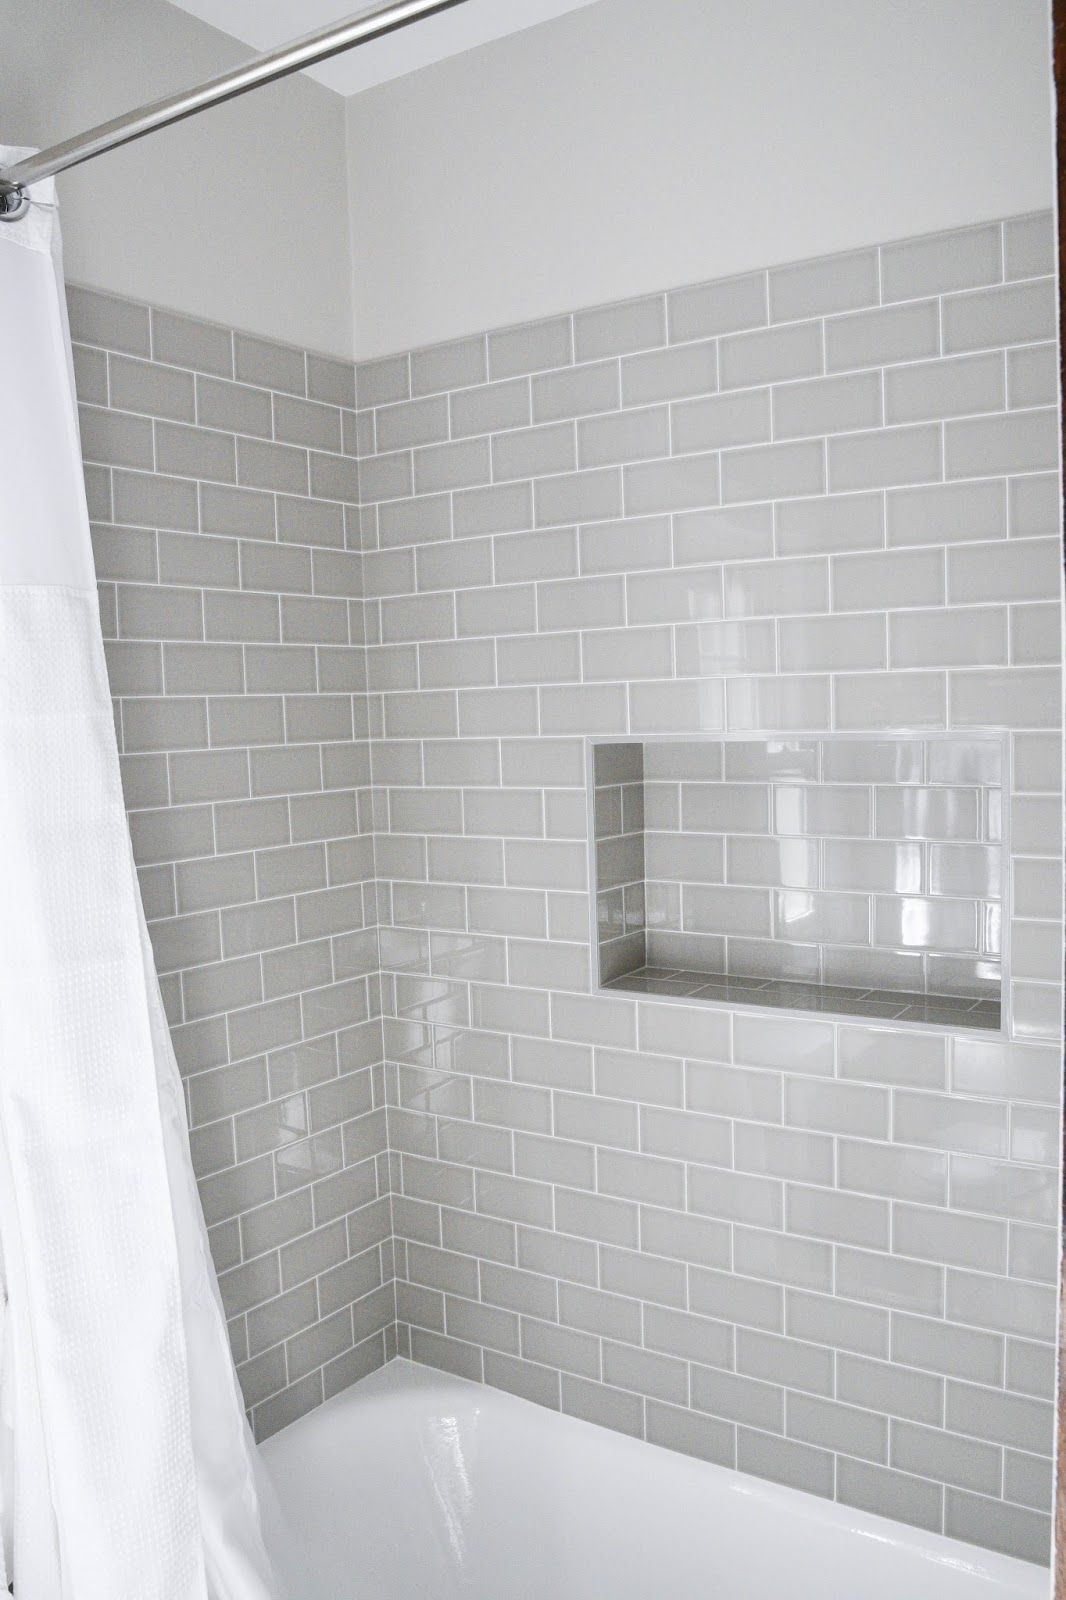 Modern meets traditional styled bathroom subway tile for Contemporary bathroom tiles